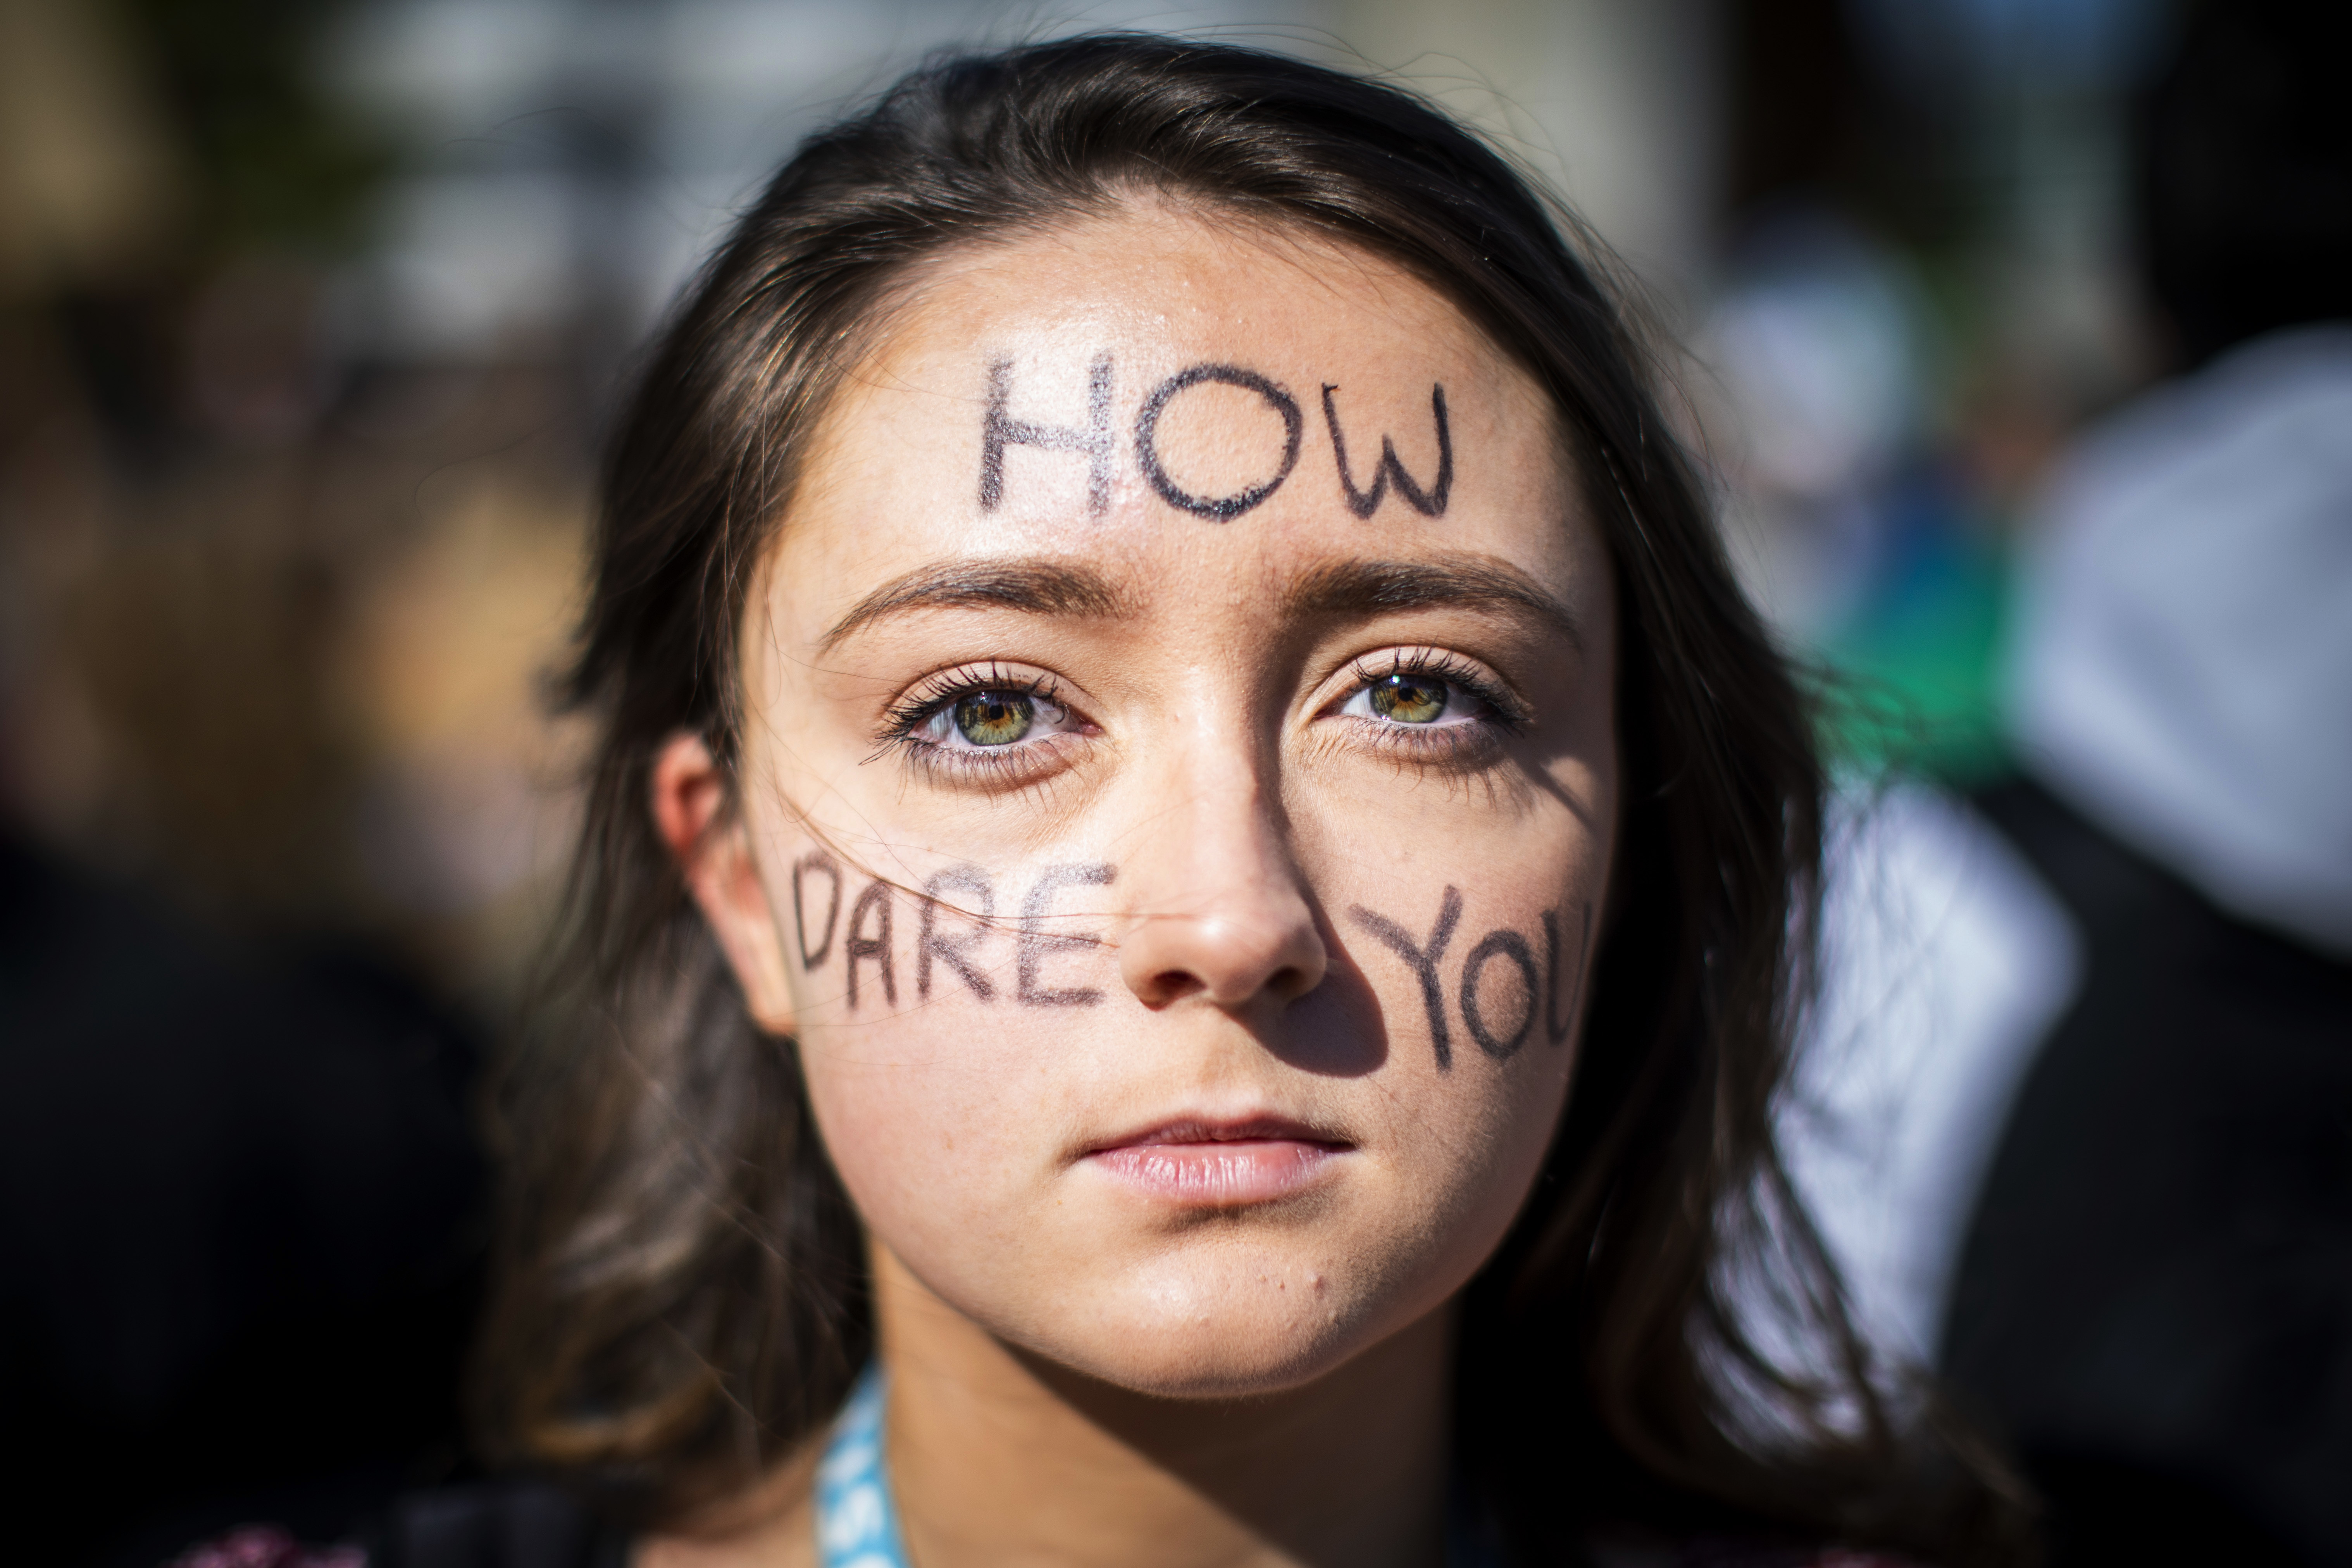 UBC student Heidi Collie, 18, participates in a climate strike on UBC's campus in Vancouver on Friday, Sept. 27, 2019. (Ben Nelms/CBC)